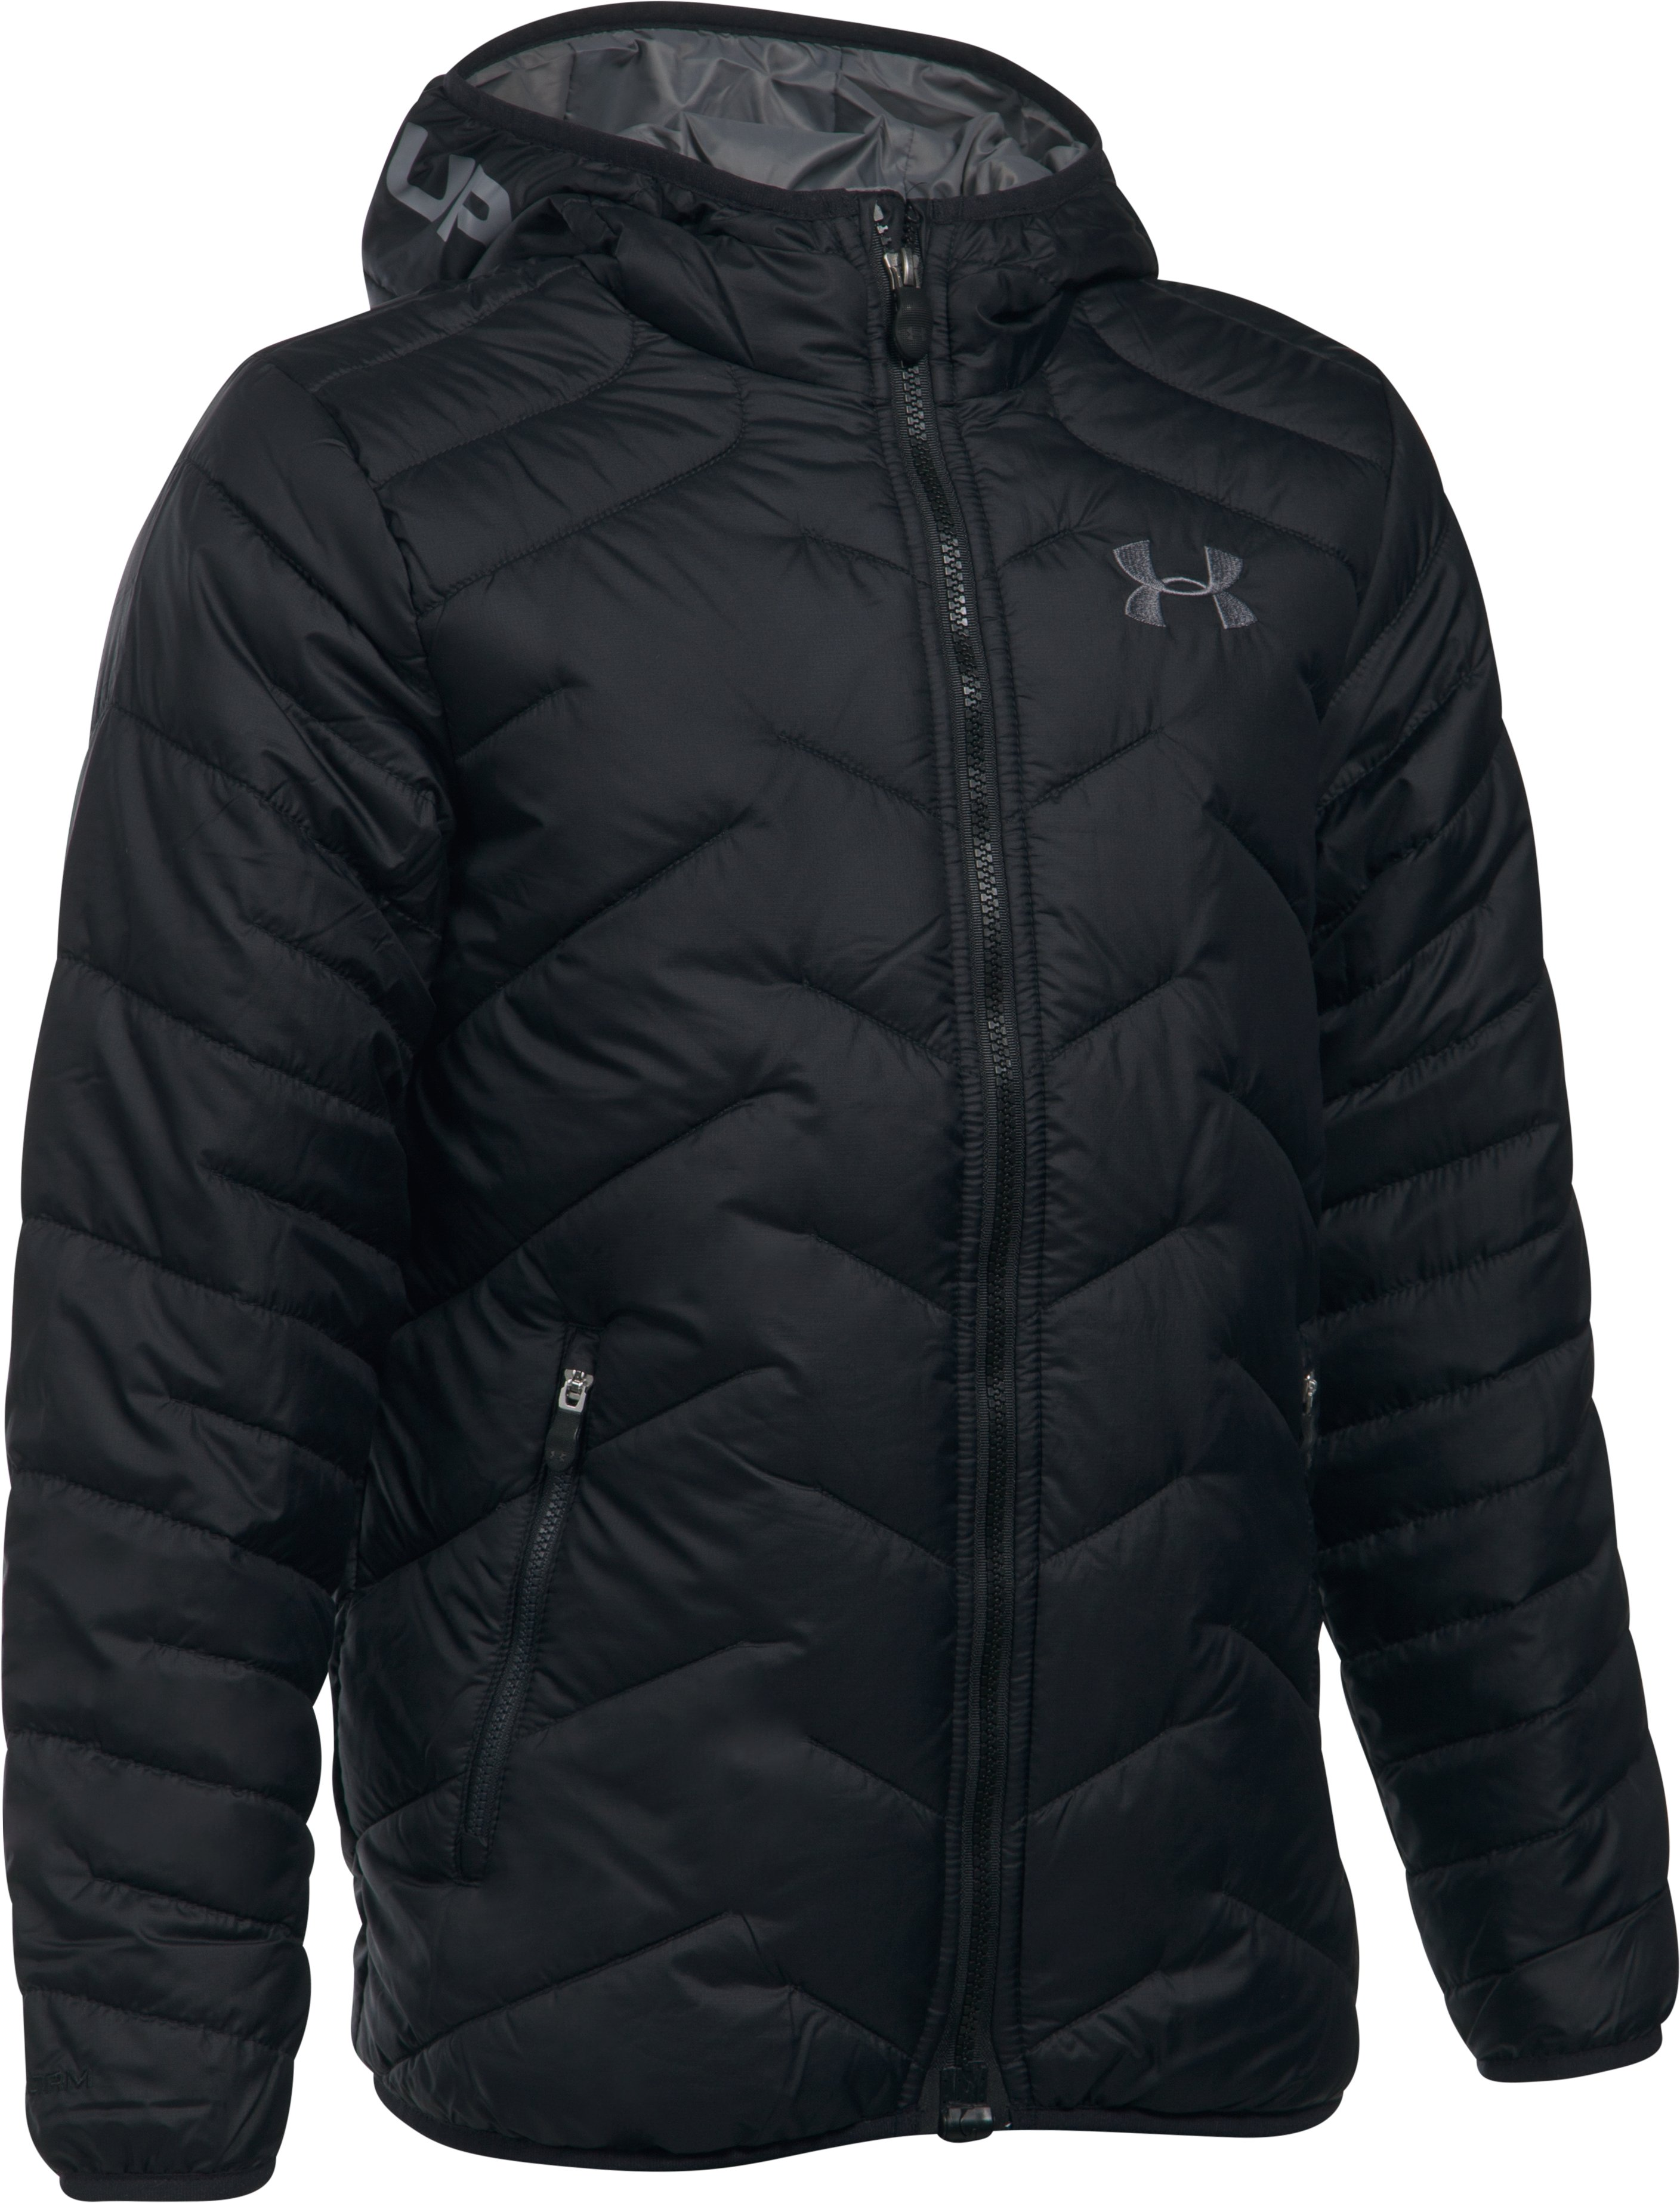 Boys' ColdGear® Reactor Hooded Jacket, Black , undefined